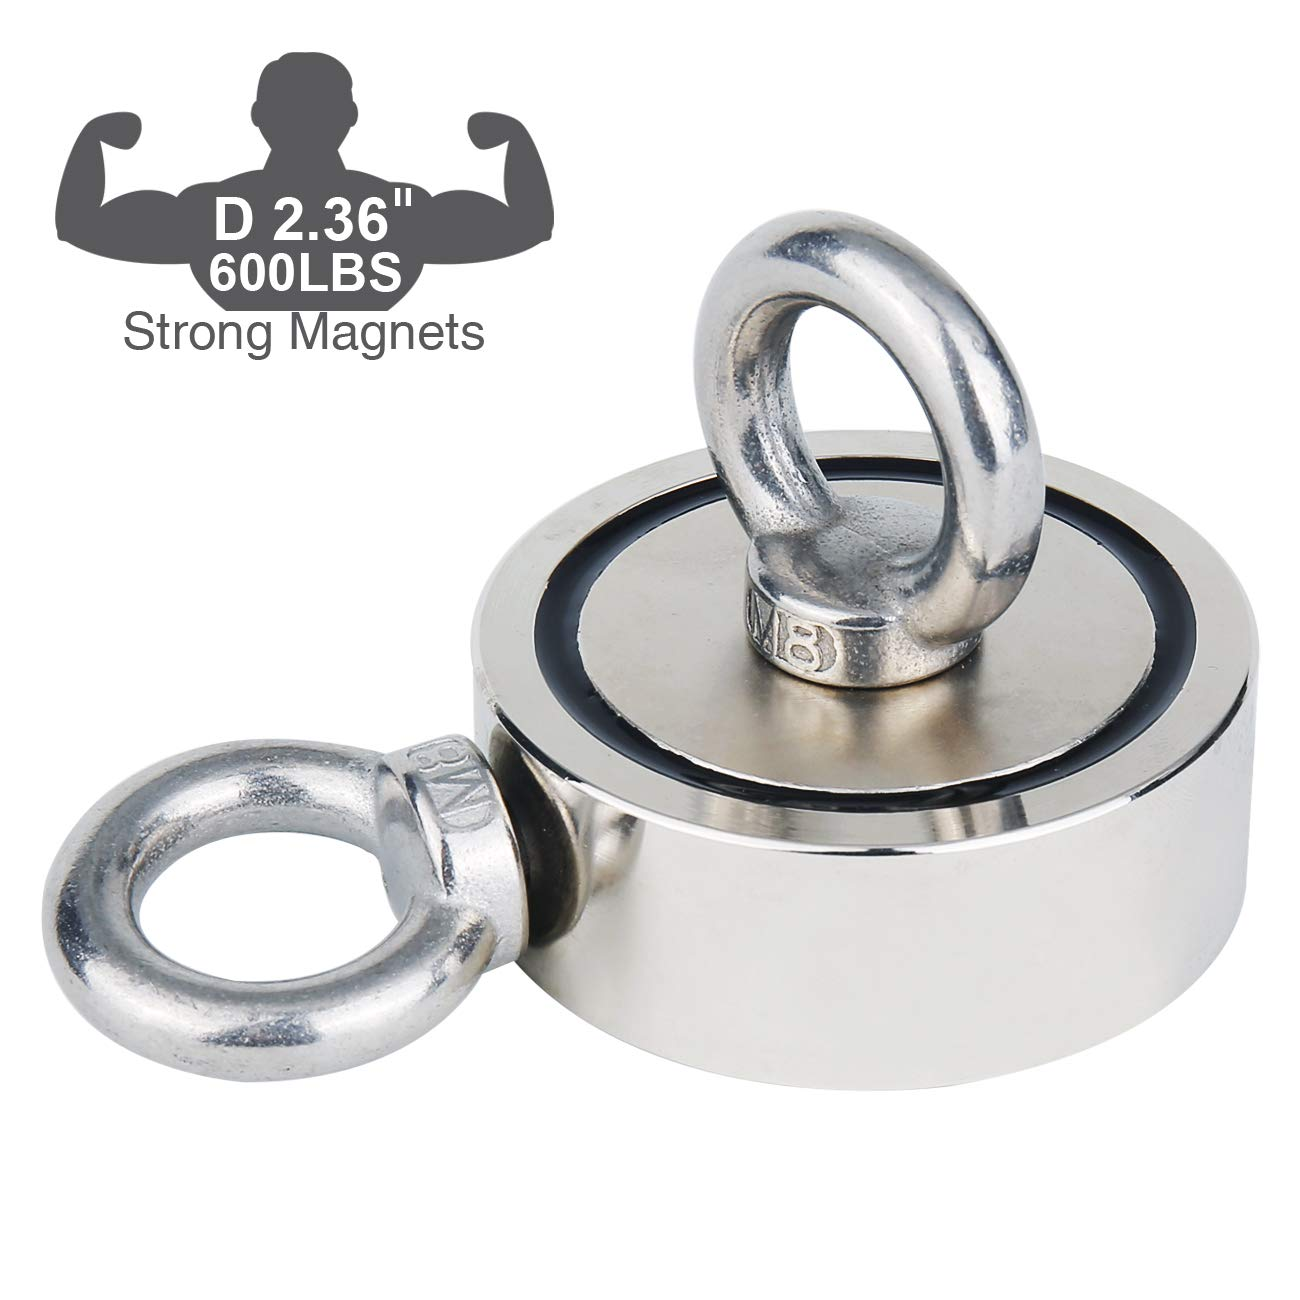 Fishing Magnet (Double-Sided Magnetic) 600LBS Pulling Force Rare Earth Neodymium Magnet with Eyebolt Diameter 2.36 inch (60mm) Superior Magnetics for Underwater Salvage, Retrieval and Recovery